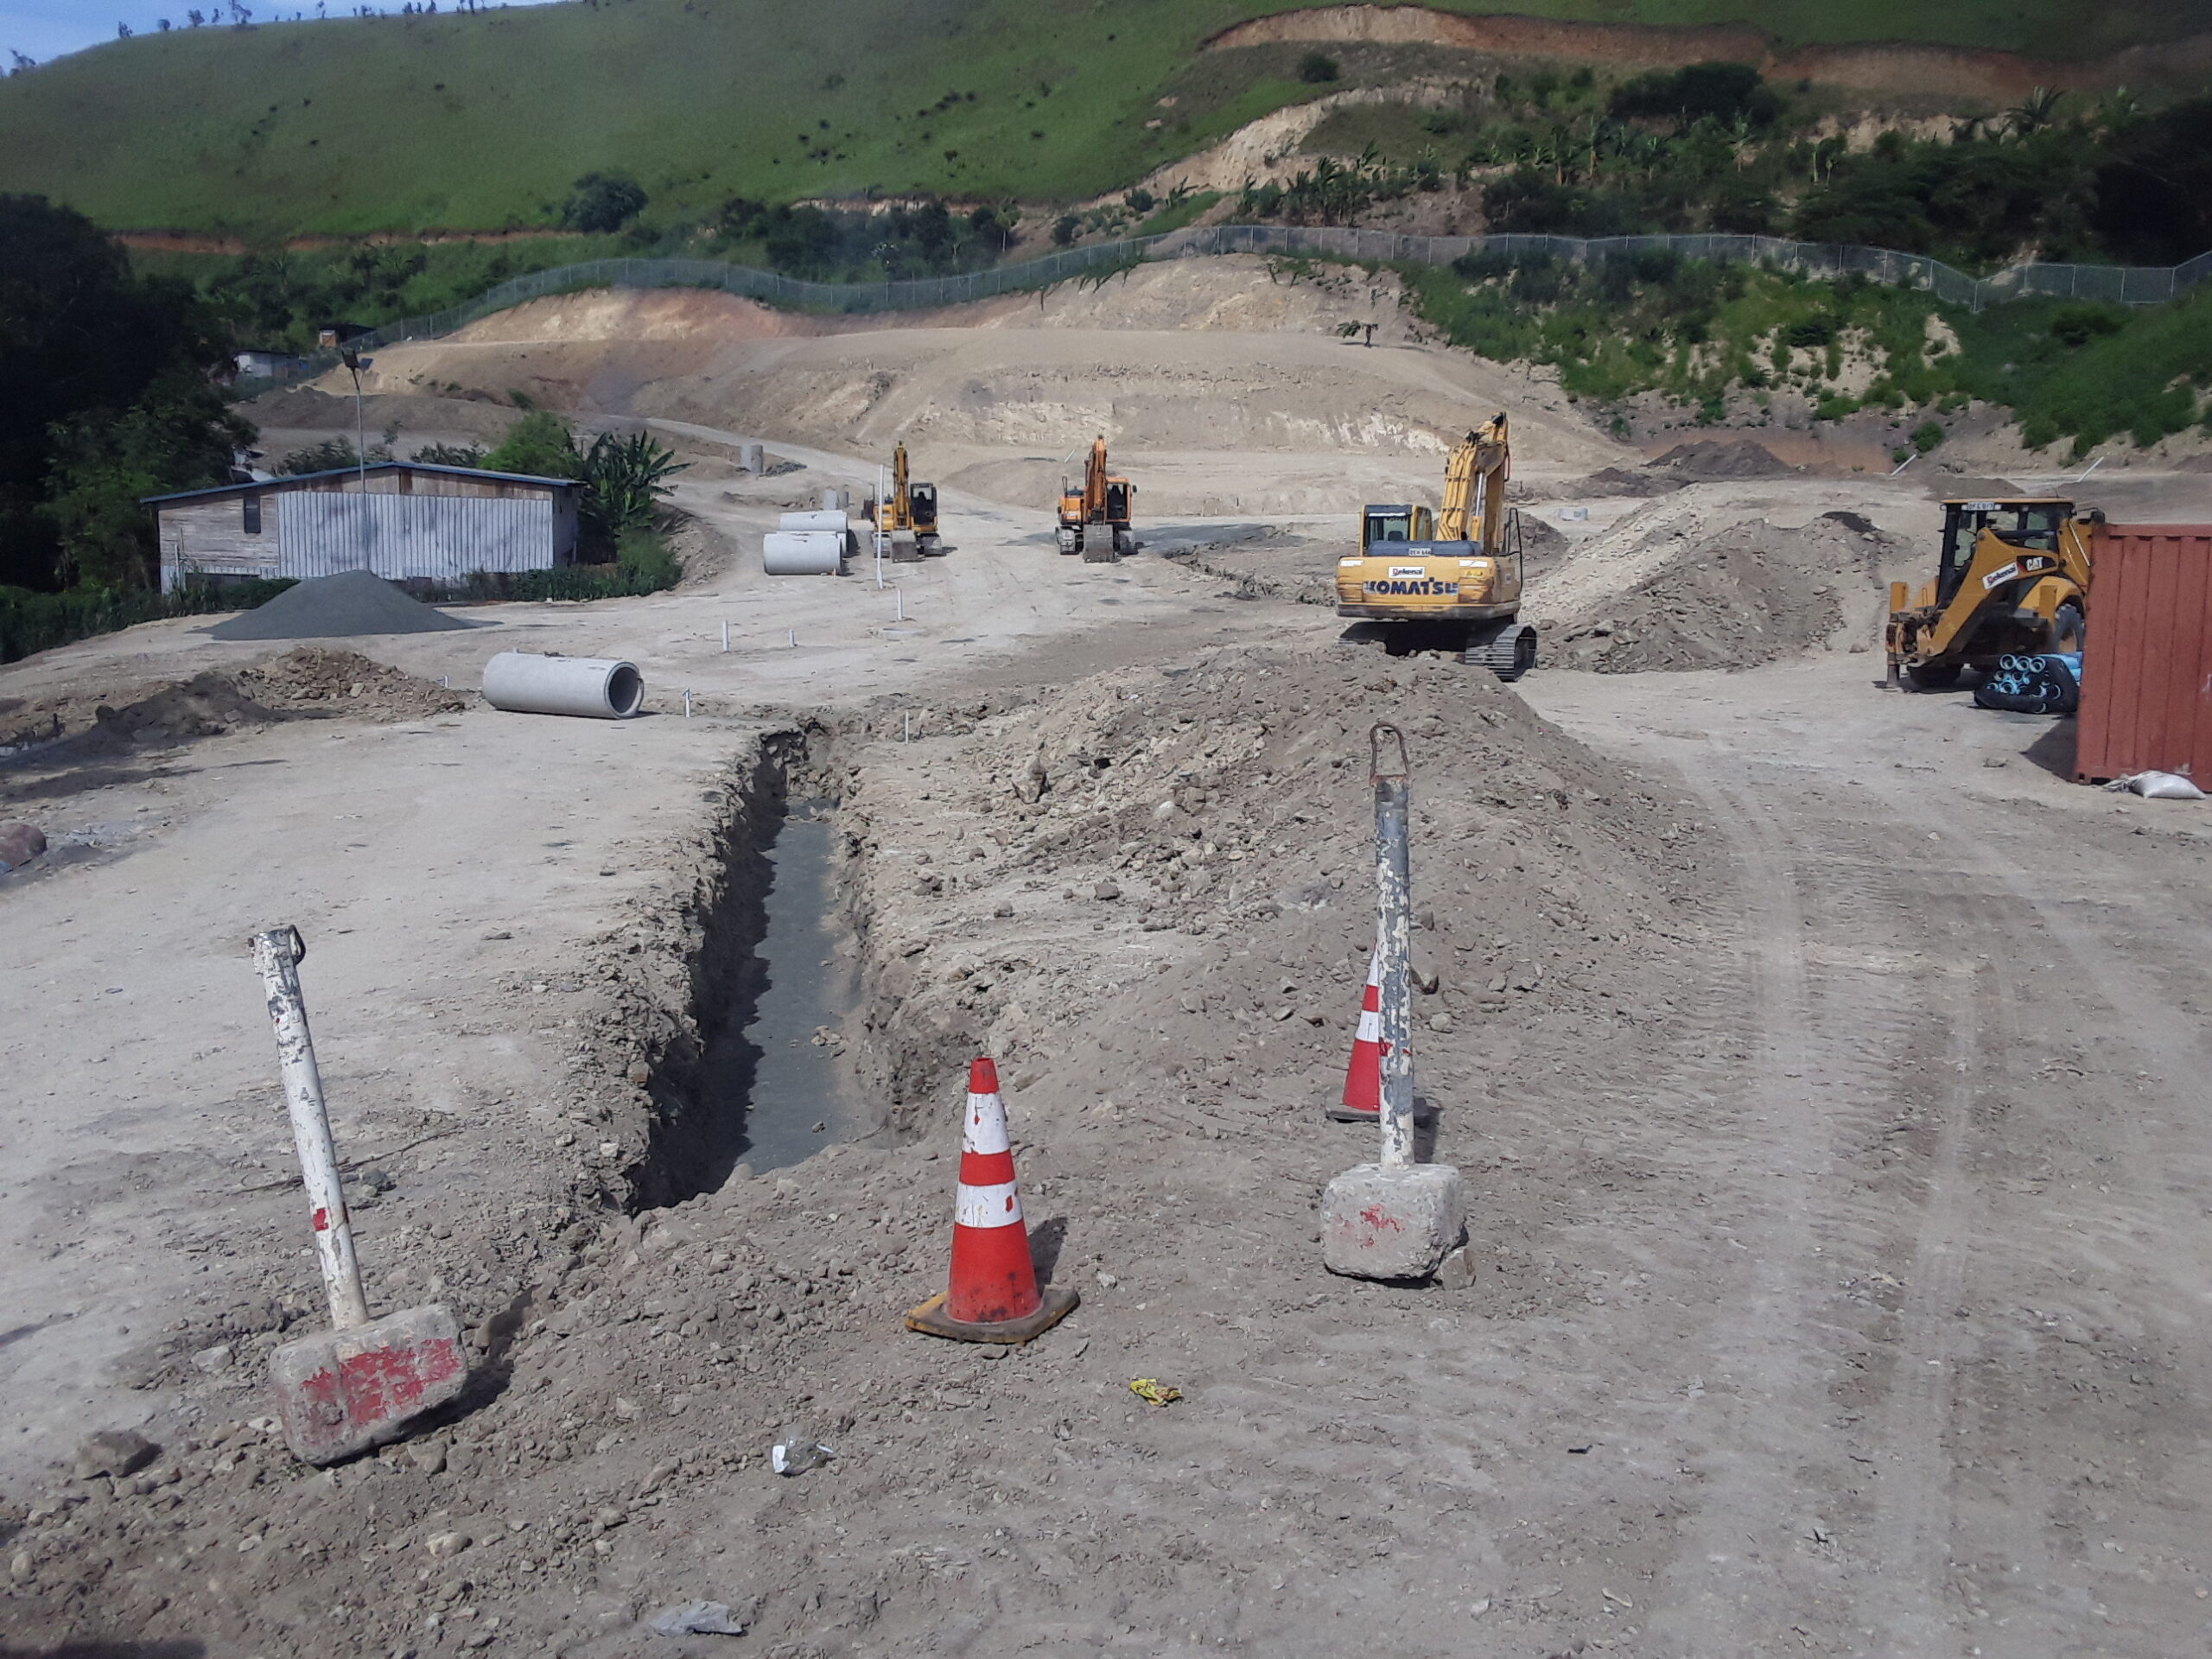 Tranquility, Civil Works Update at Tranquility Estate